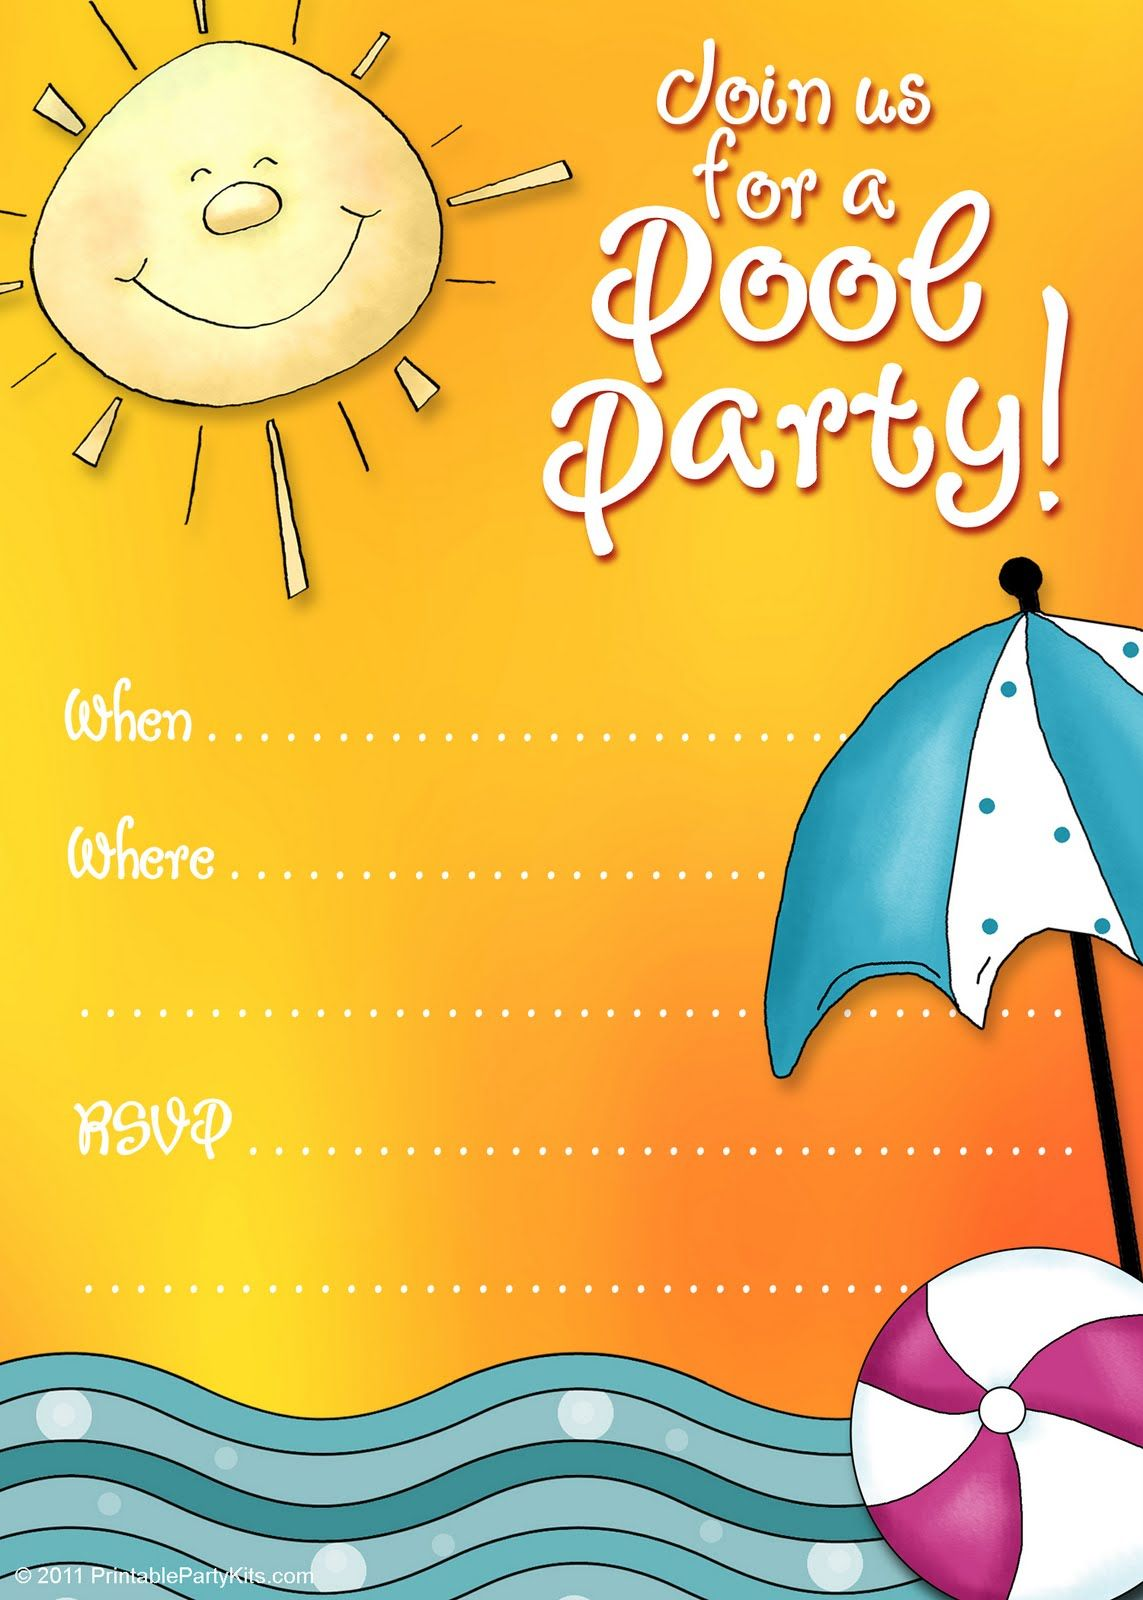 Free Printable Party Invitations Free Printable Pool Party – Pool Party Invitation Templates Free Printable